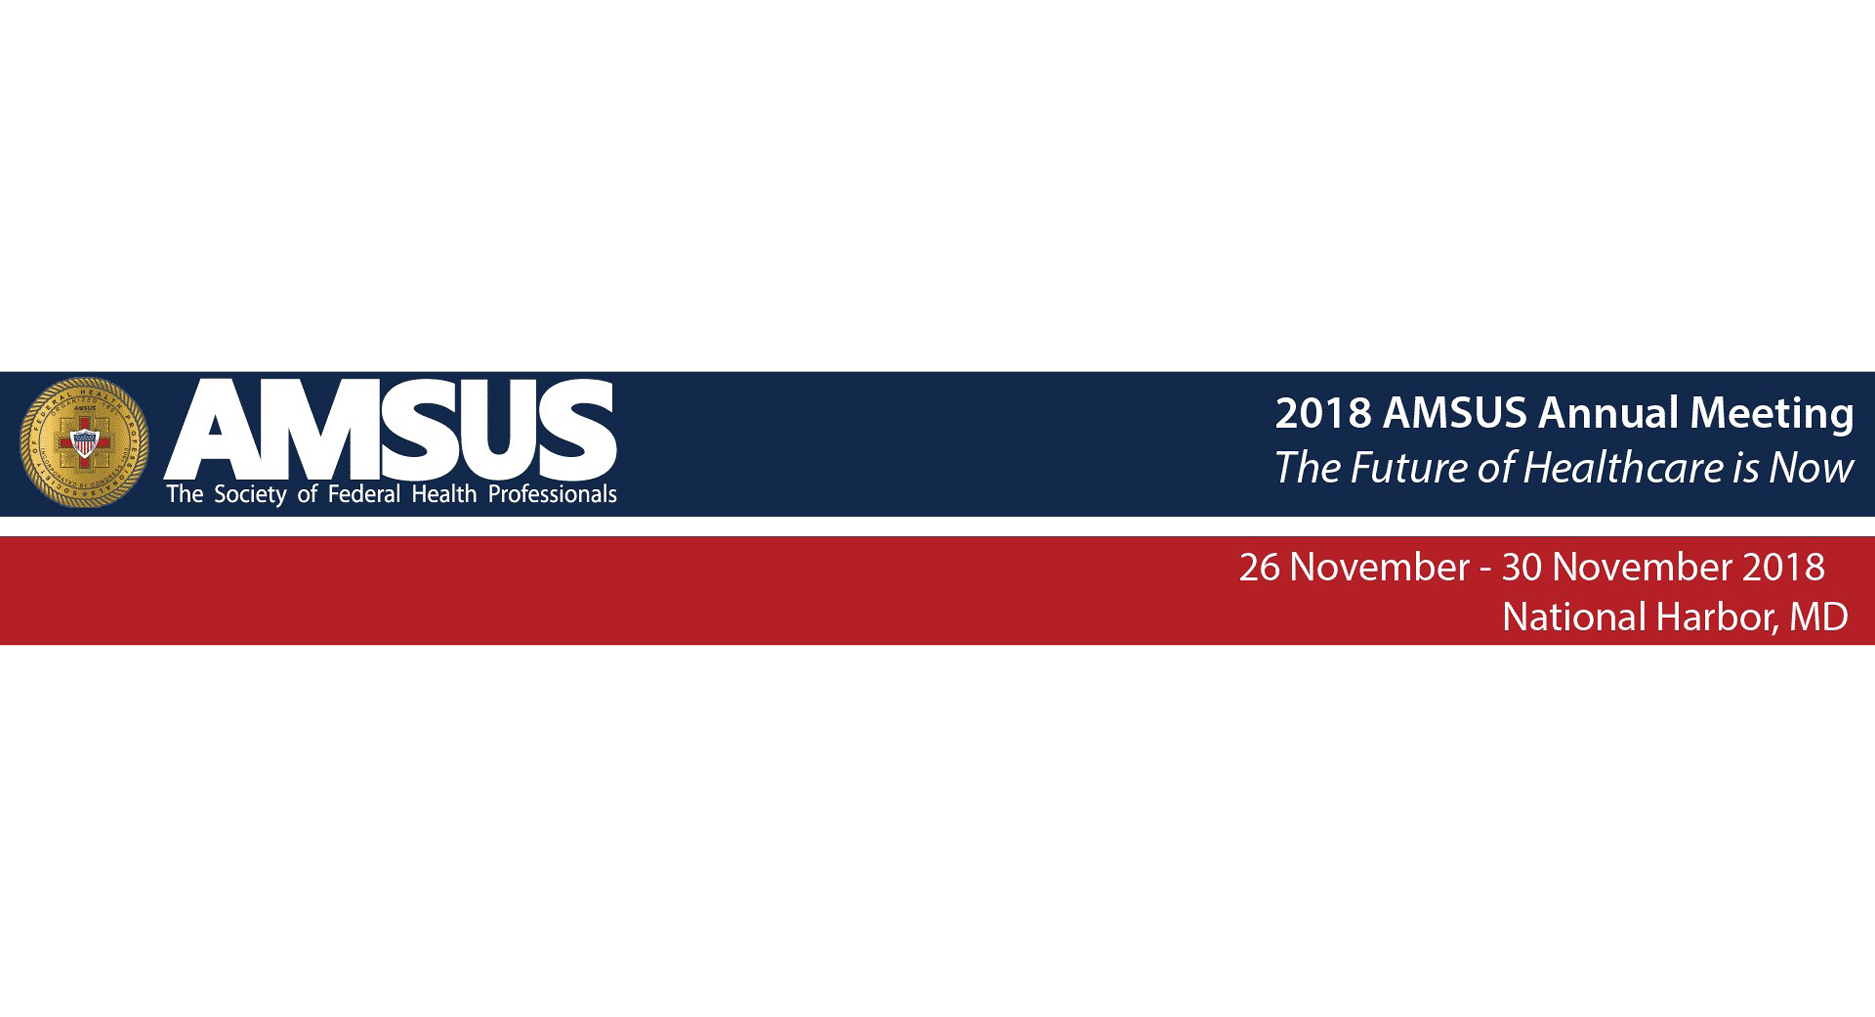 2018 AMSUS Annual Meeting